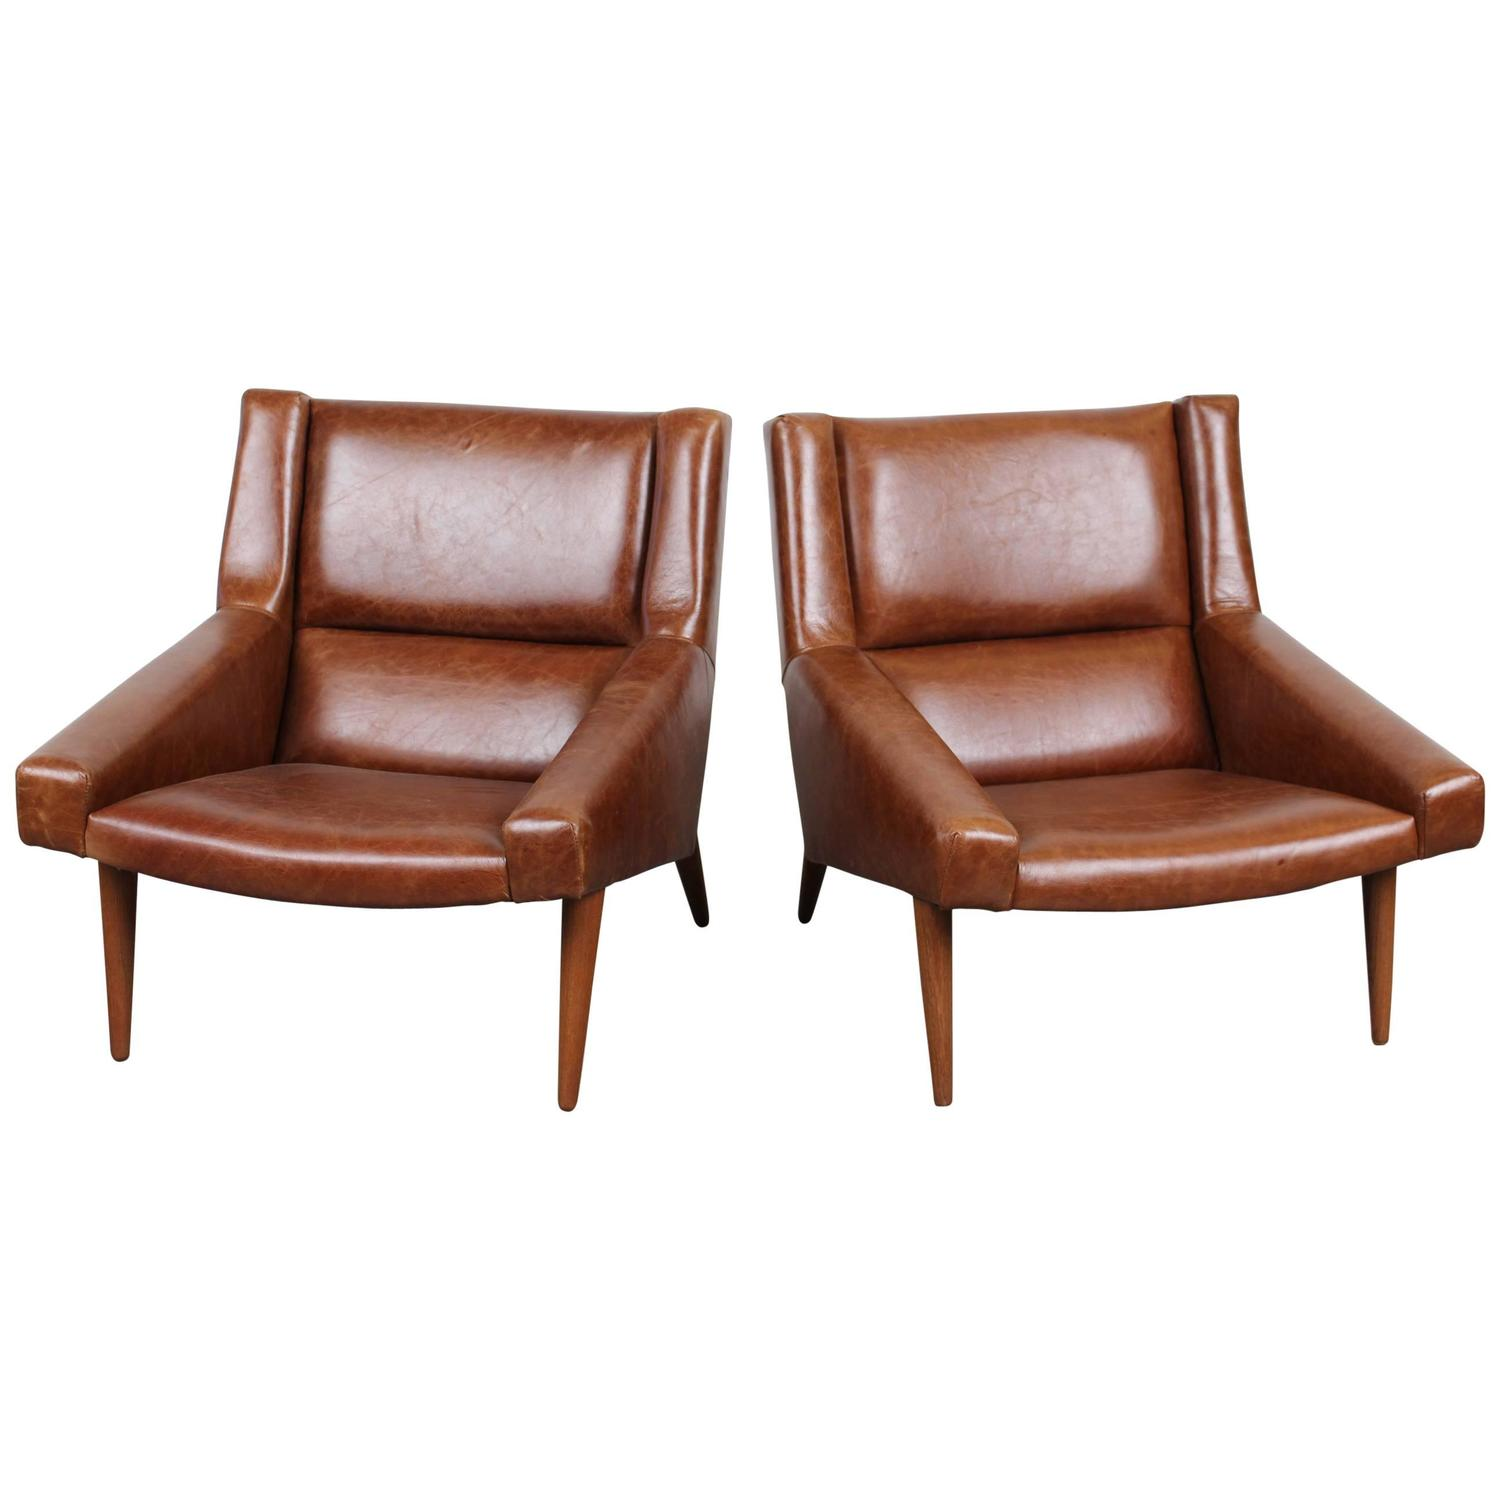 Pair Of Danish Mid Century Modern Lounge Chairs By Illum Wikkelso At 1stdibs